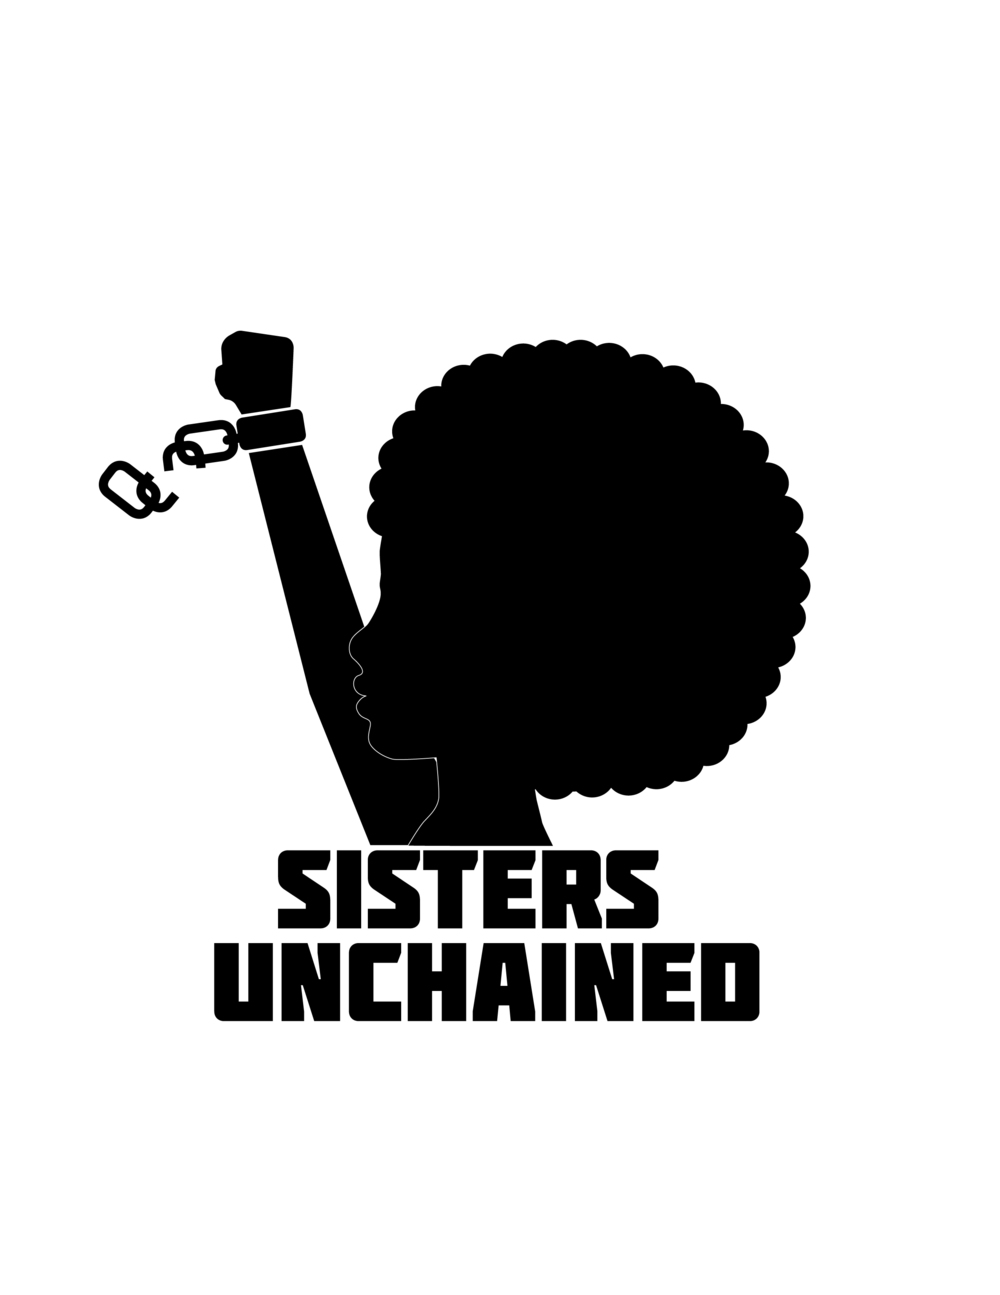 Sisters Unchained